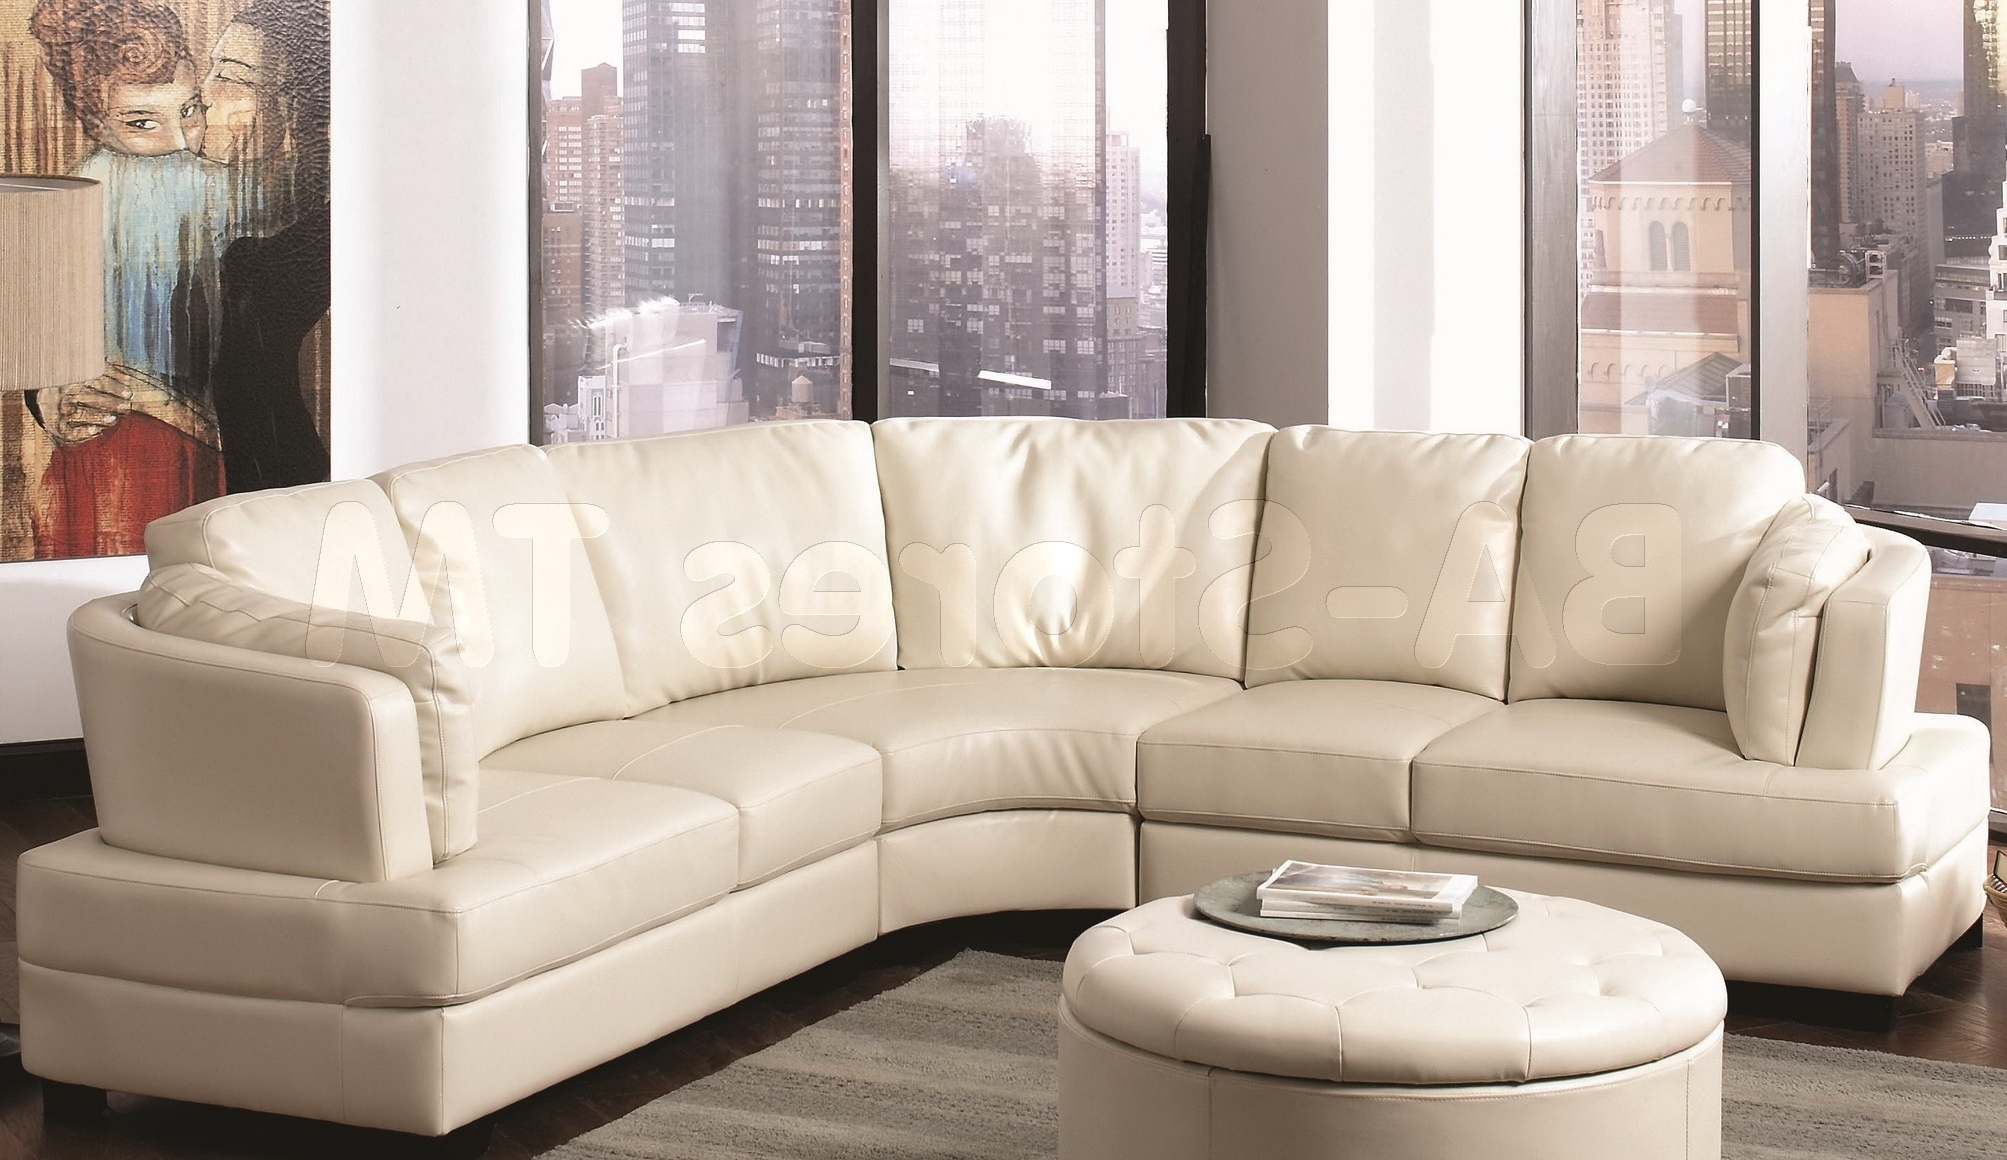 Latest Rochester Ny Sectional Sofas Intended For Collection Sectional Sofas Rochester Ny – Mediasupload (View 12 of 20)